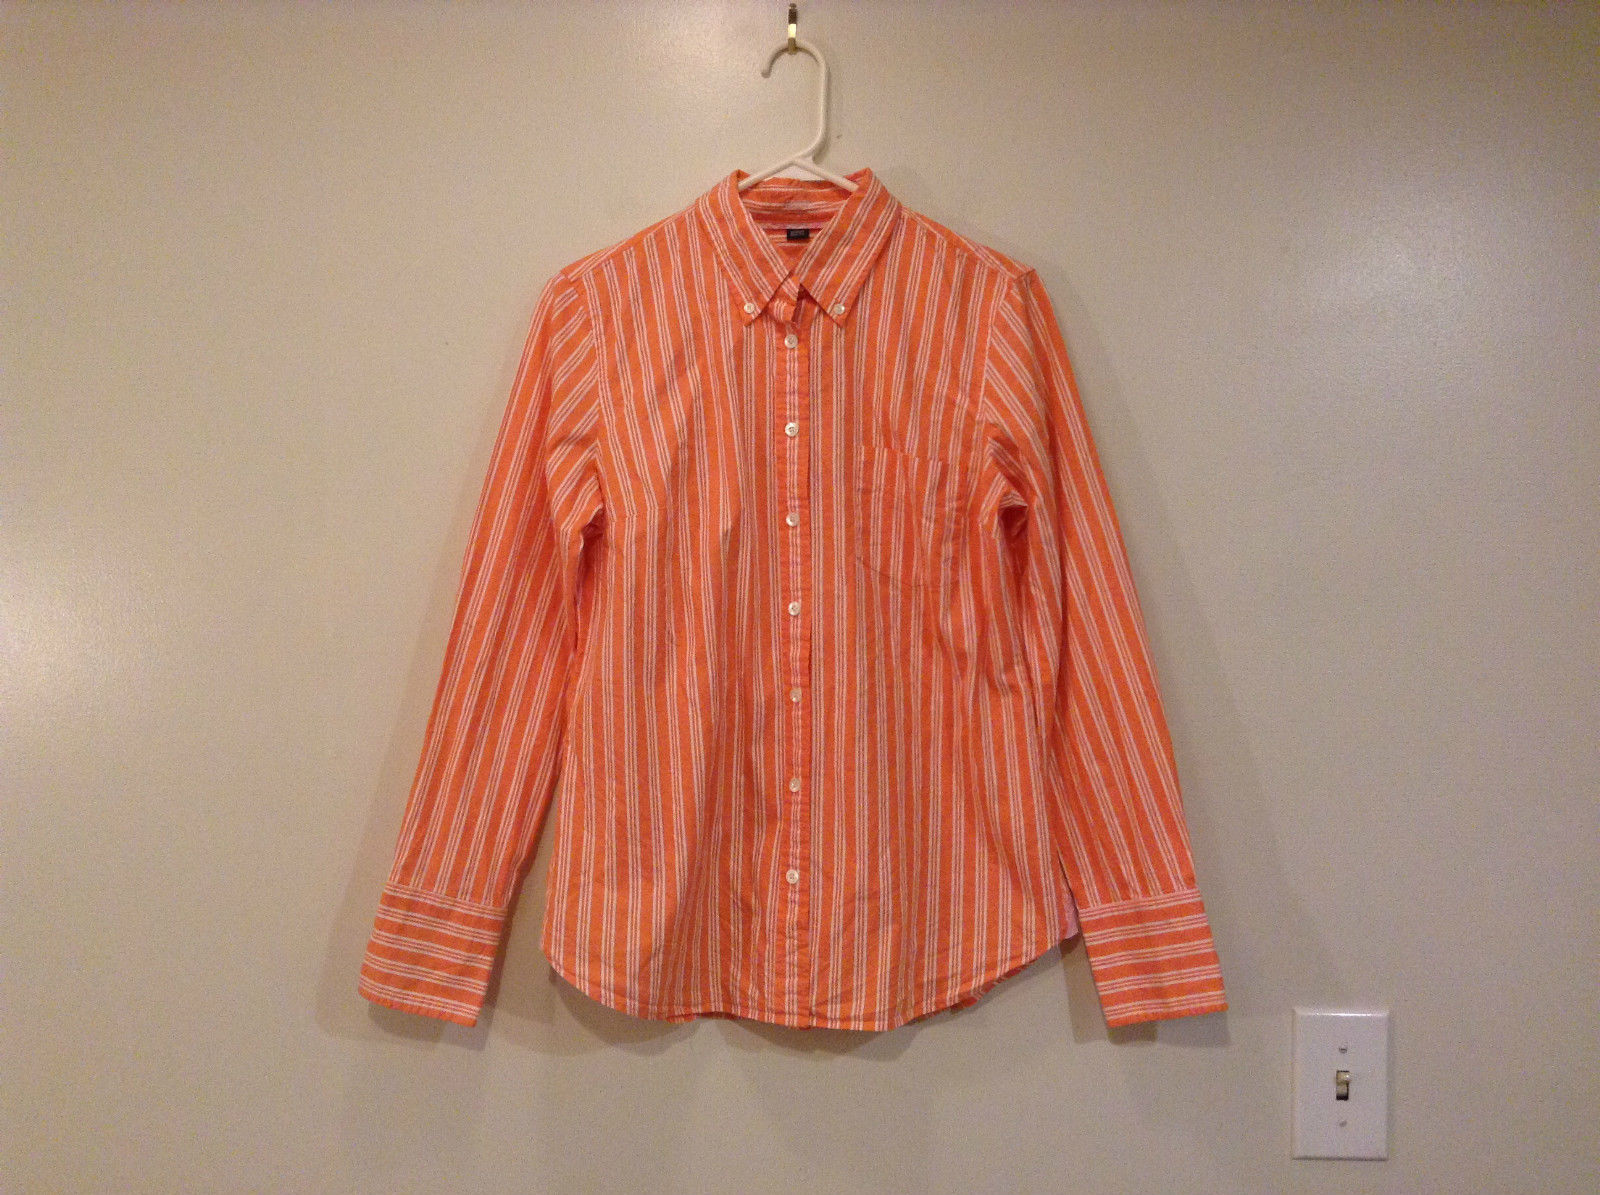 J. Crew Classic Orange and Pink with White Stripes Button Front Shirt Size M